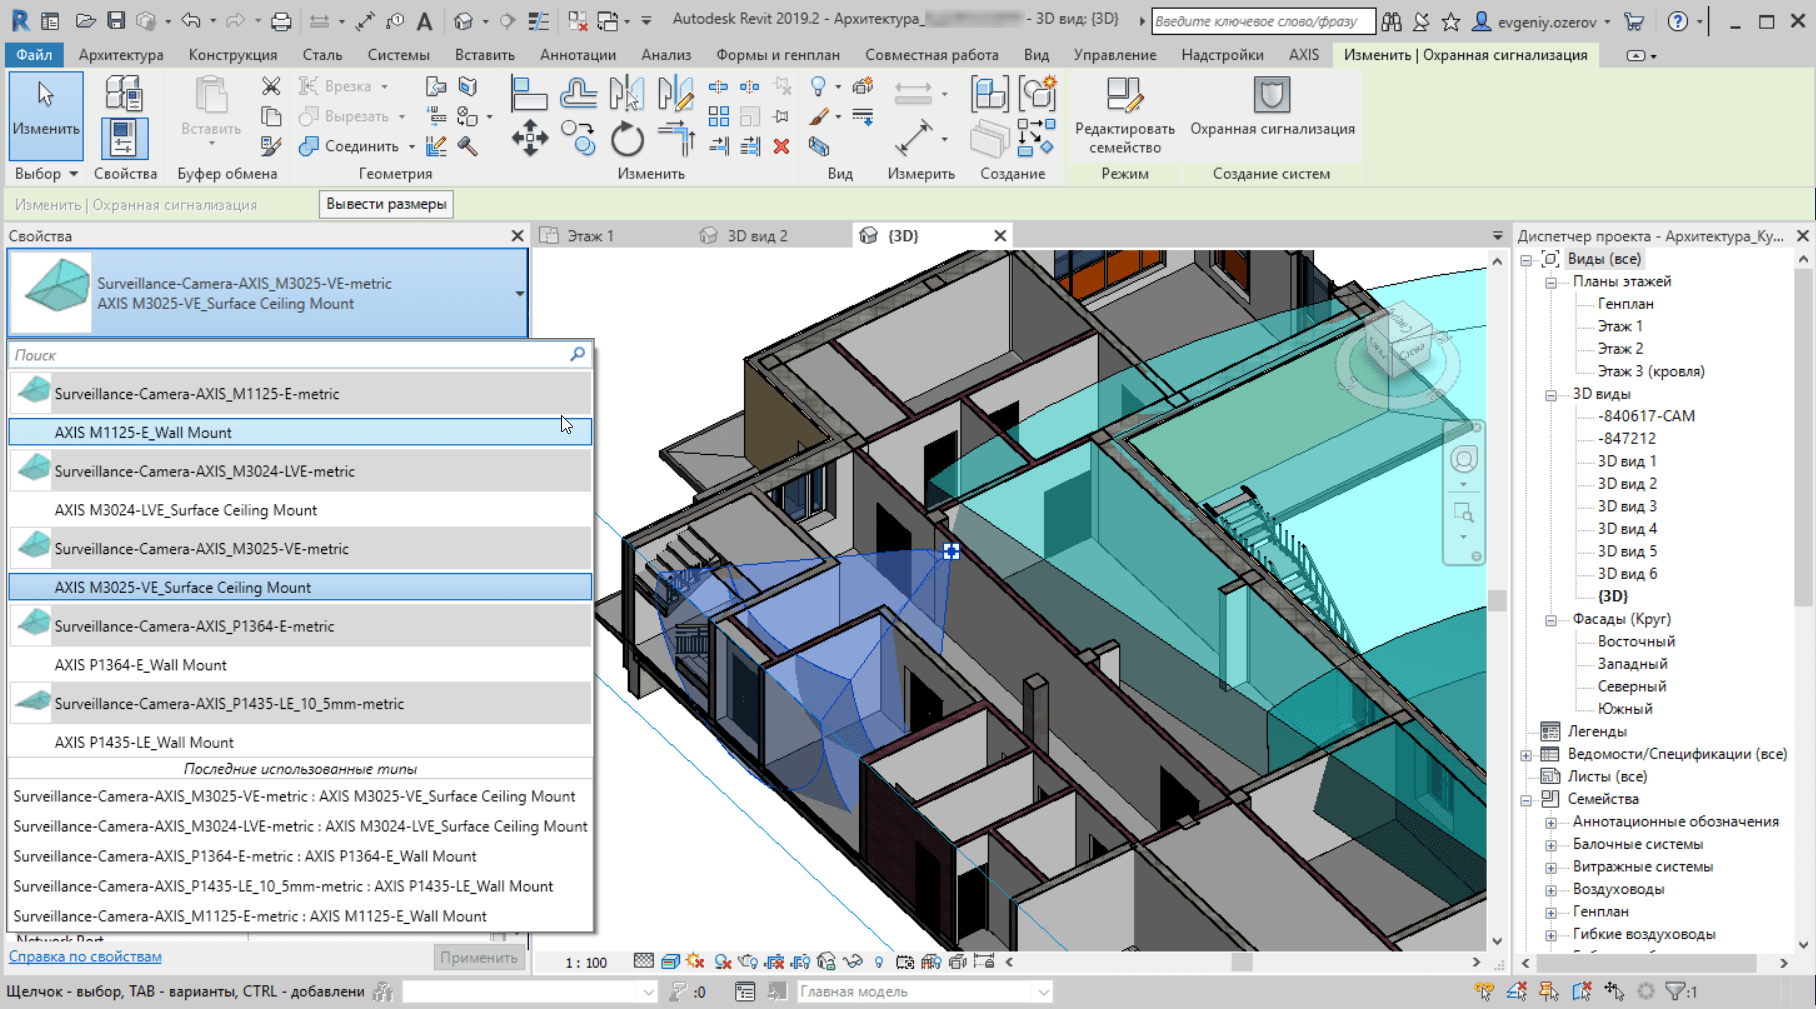 AXIS plugin for Autodesk Revit